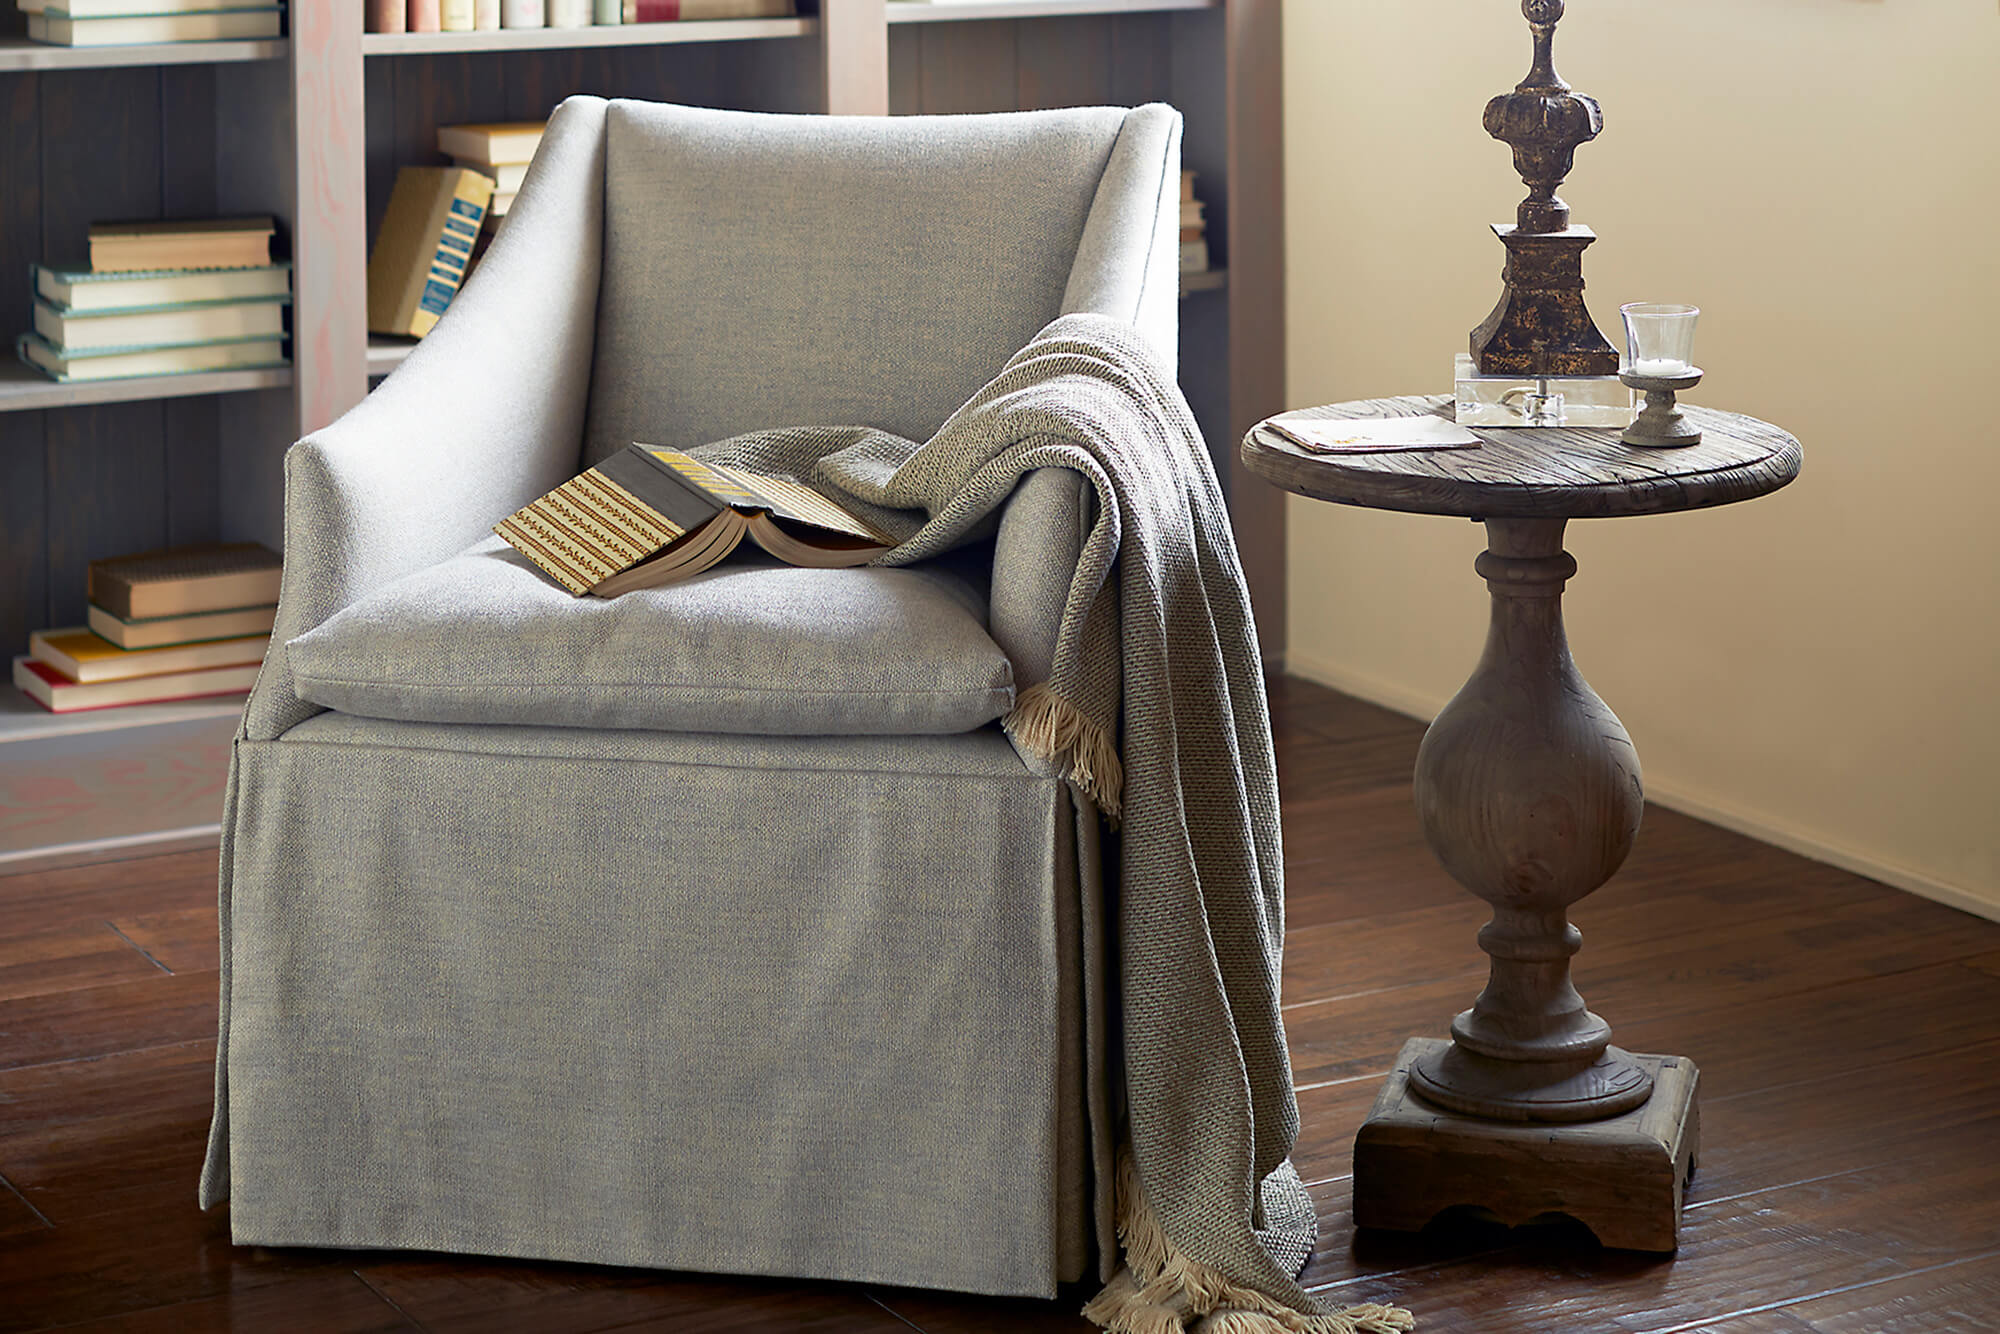 A Sunbrella Throw by Textillery Weavers is draped over a grey chair